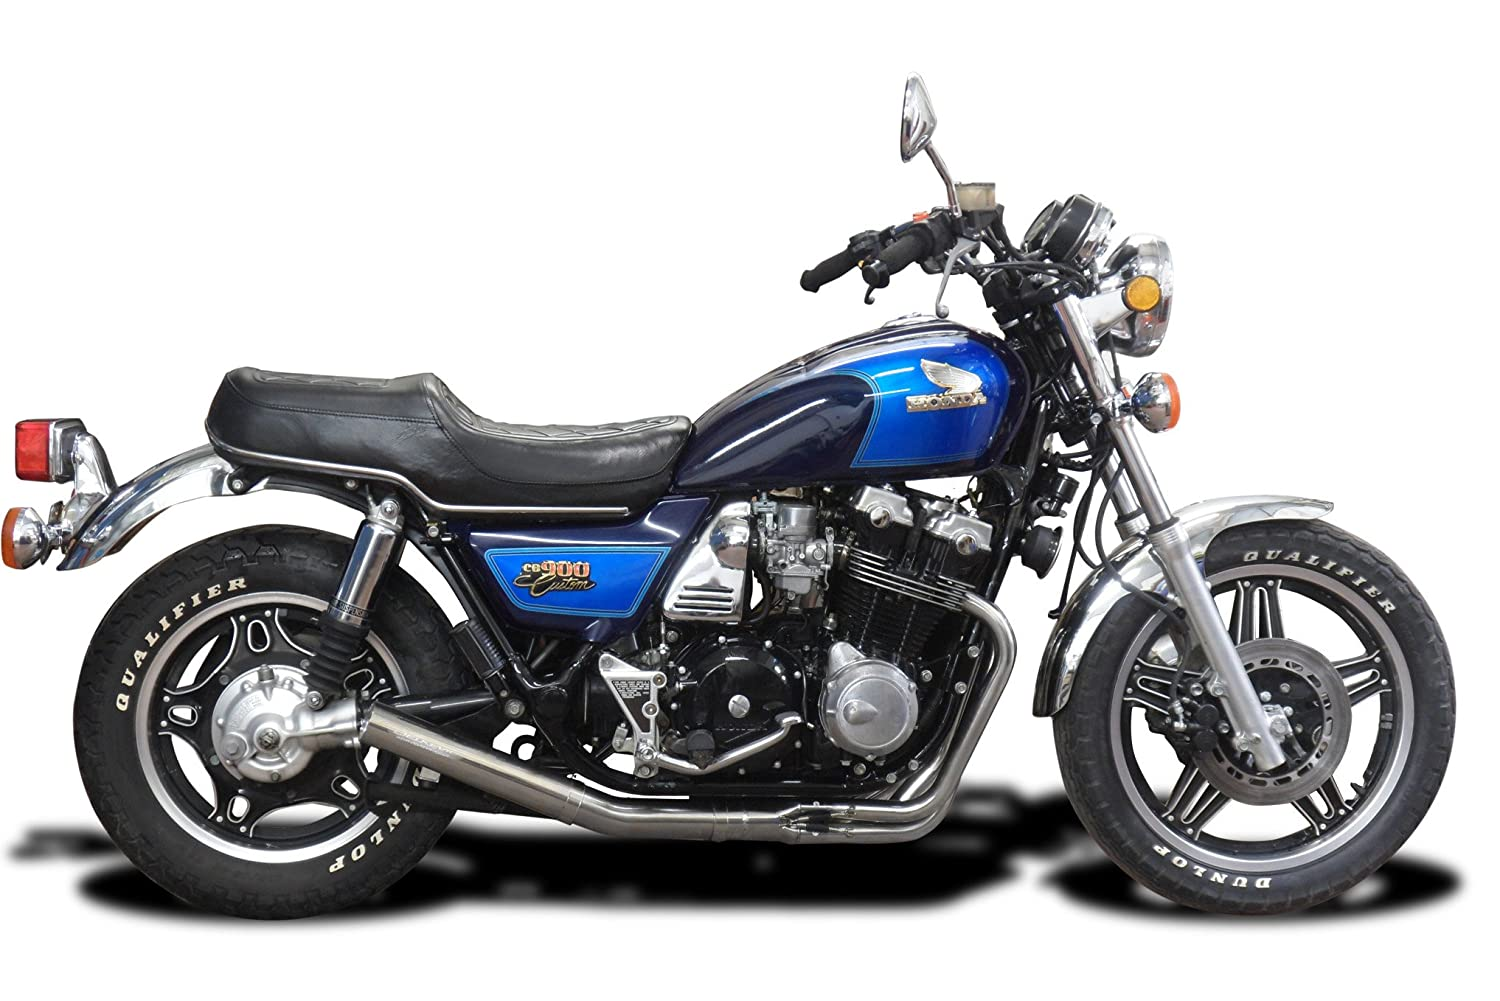 1980-1982 with Classic Straight Universal Muffler and Stainless Steel 4-1 Headers Delkevic Aftermarket Complete System compatible with Honda CB900C